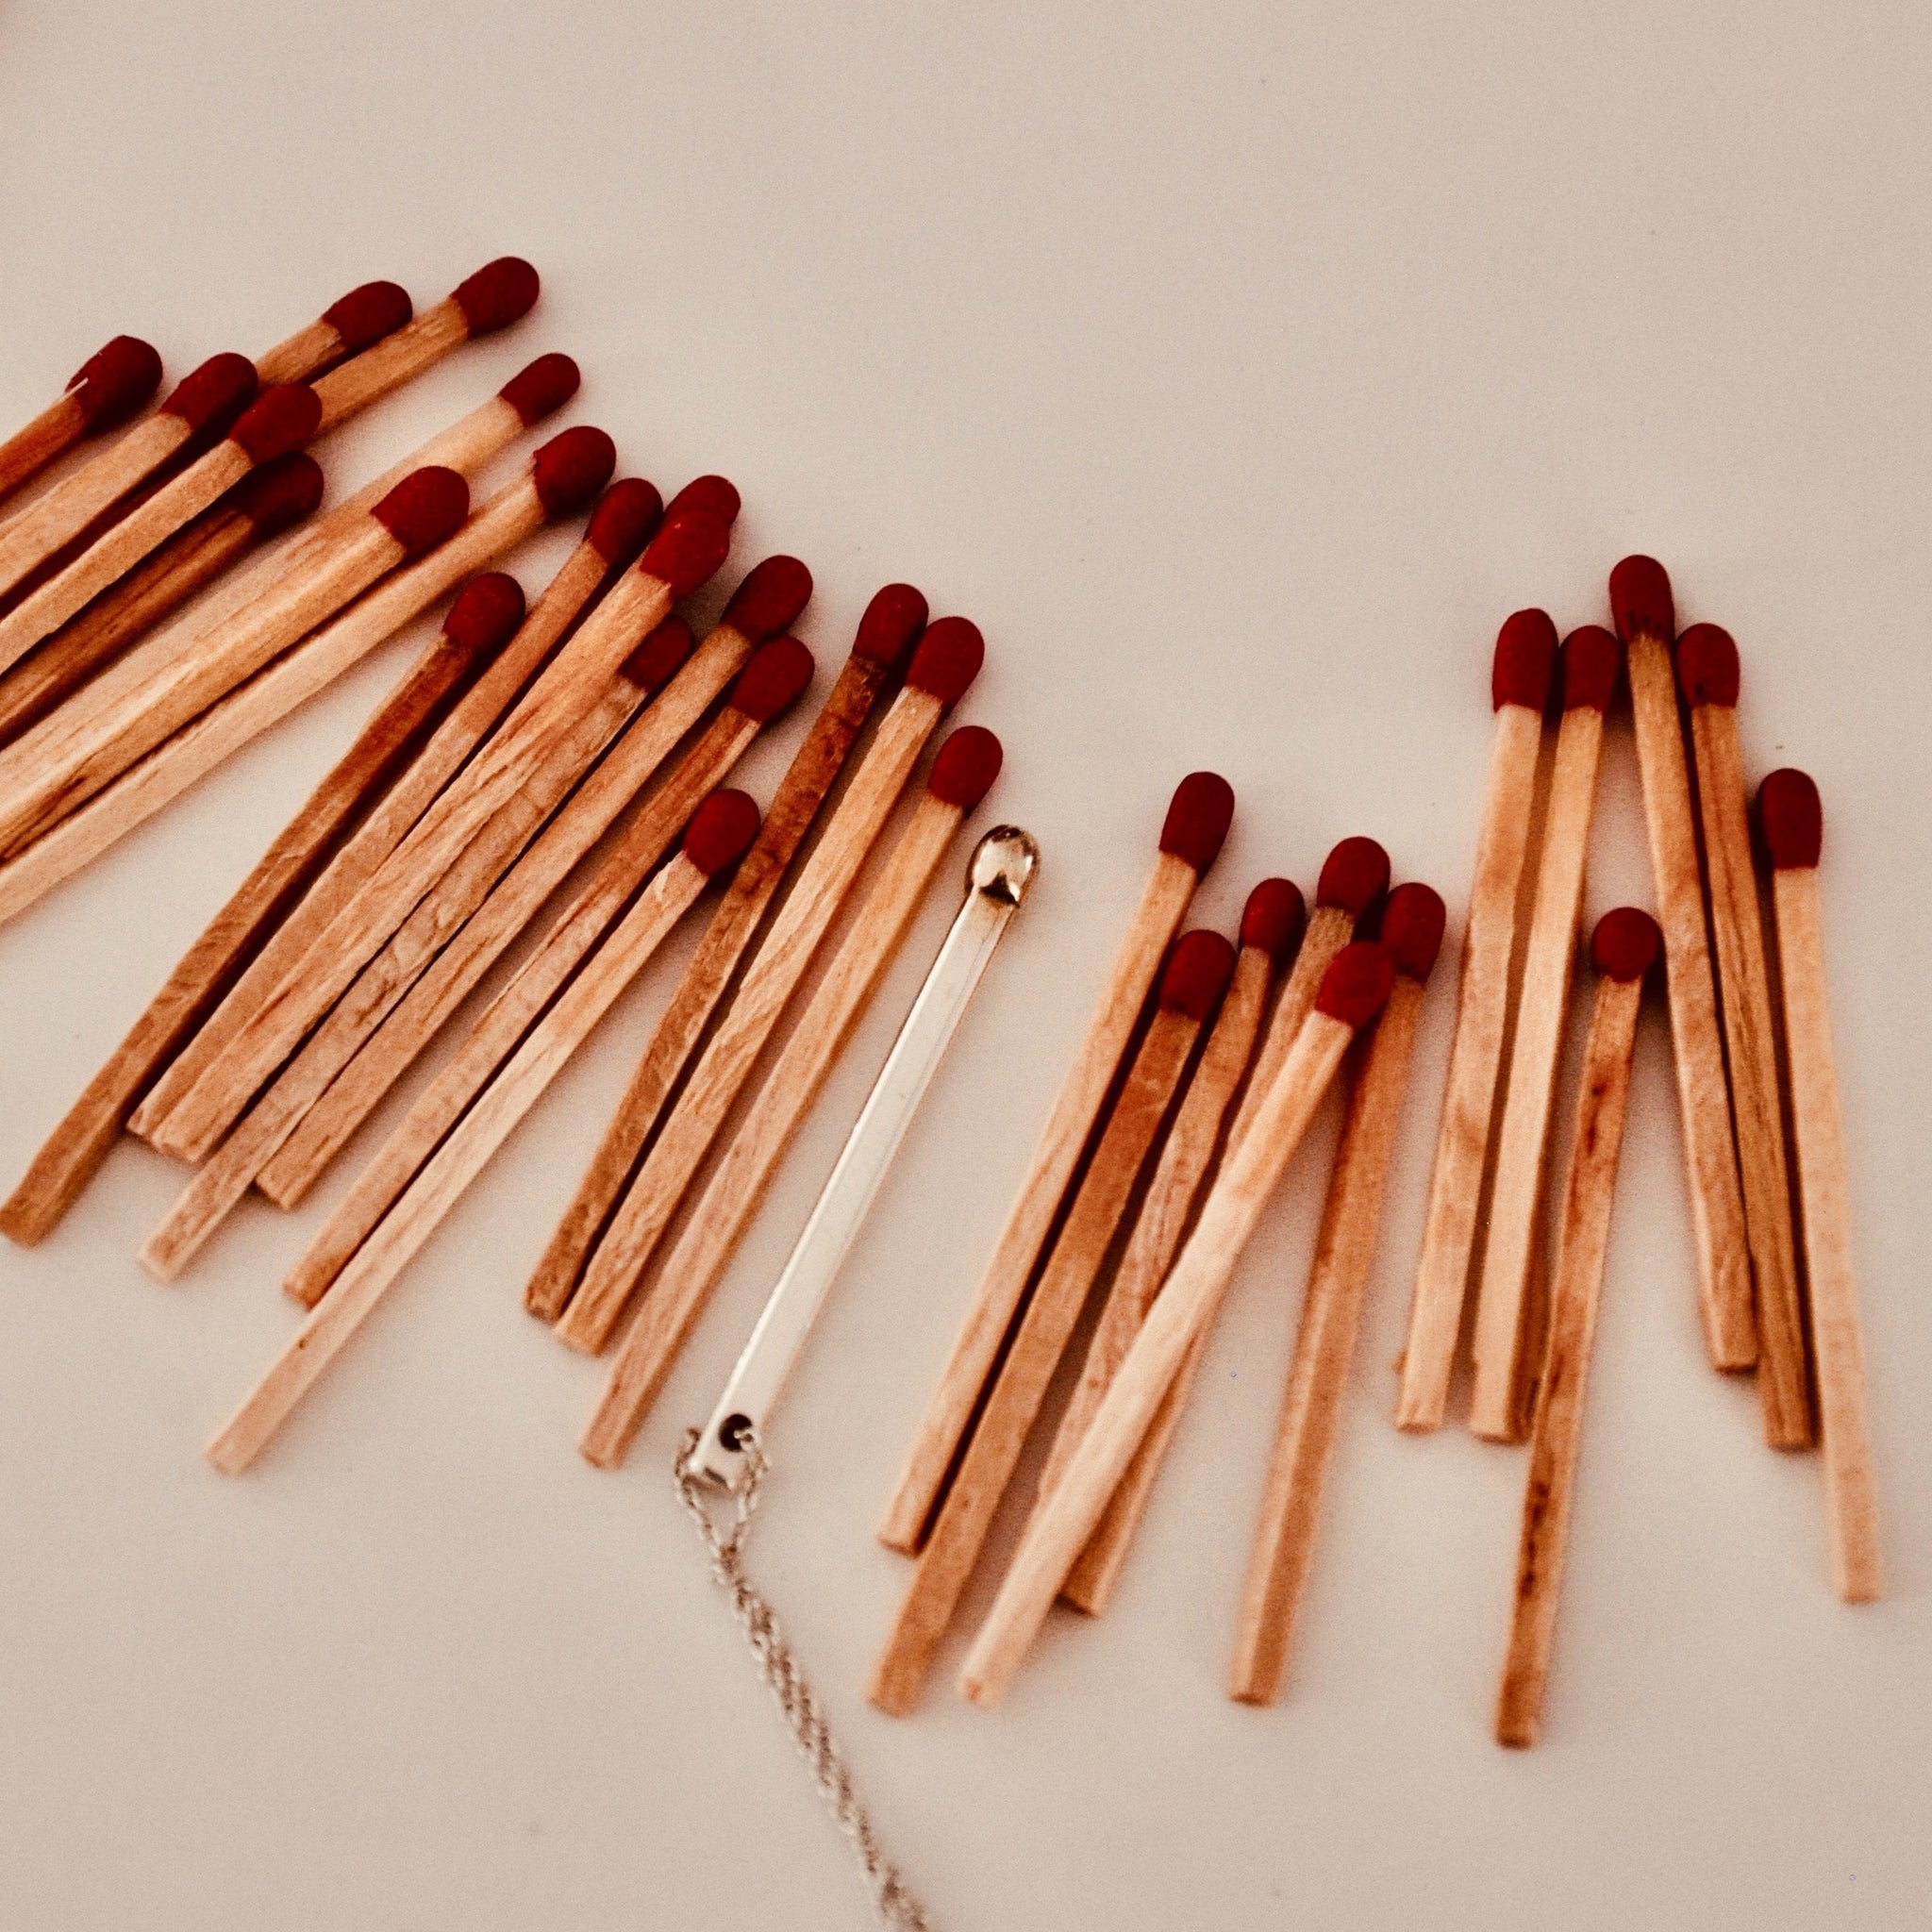 matchstick necklace - René Habie